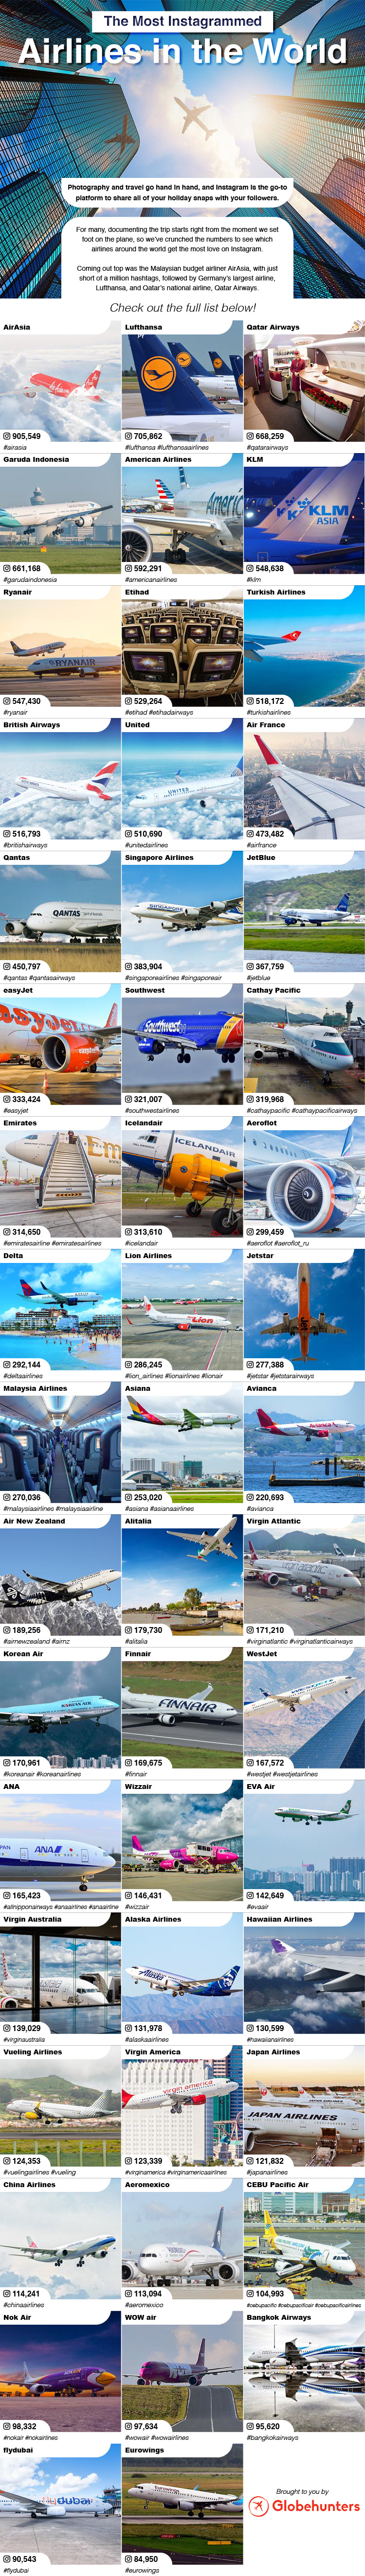 The Most Instagrammed Airlines in the World